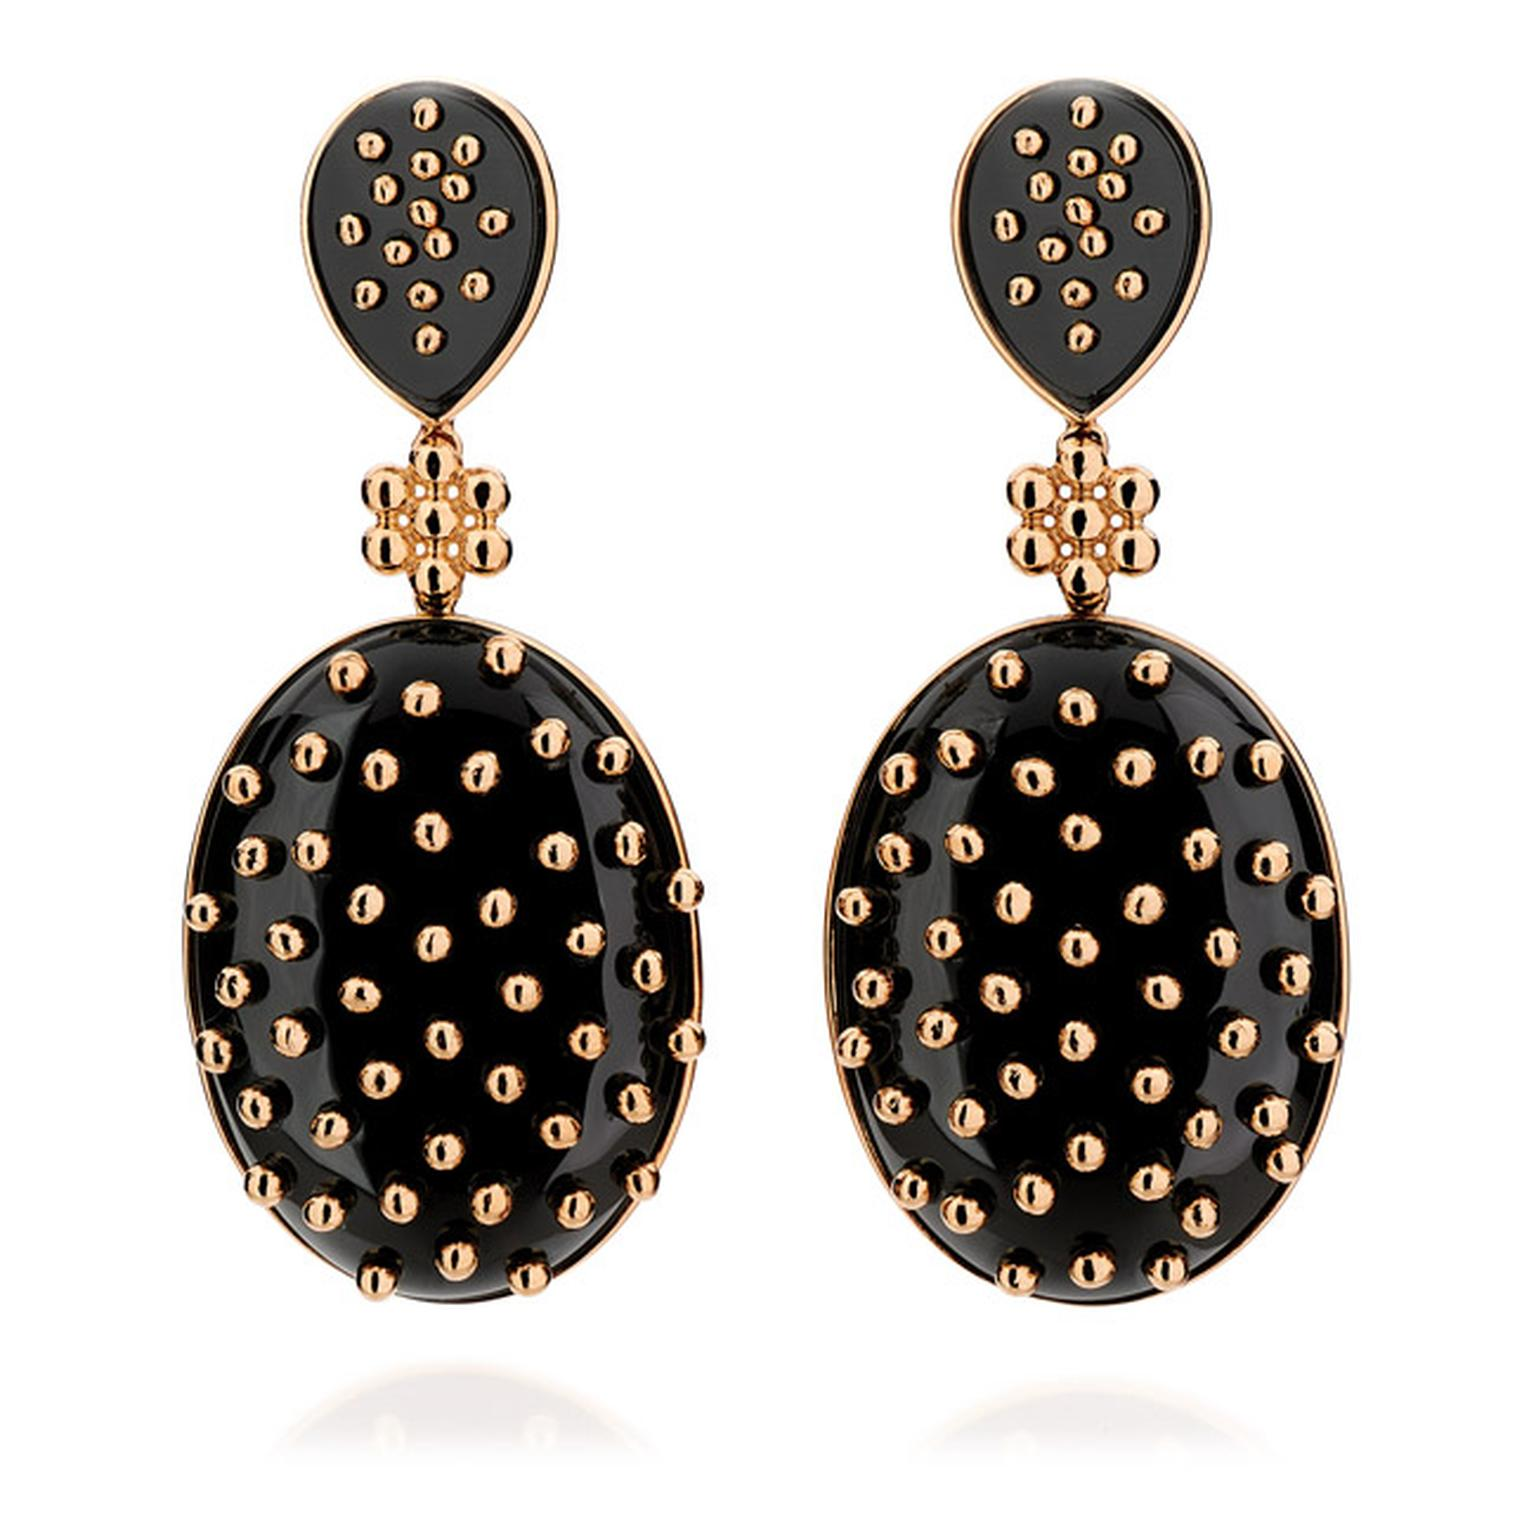 Carla-Amorim-Noite-Paulistana-earrings-Main